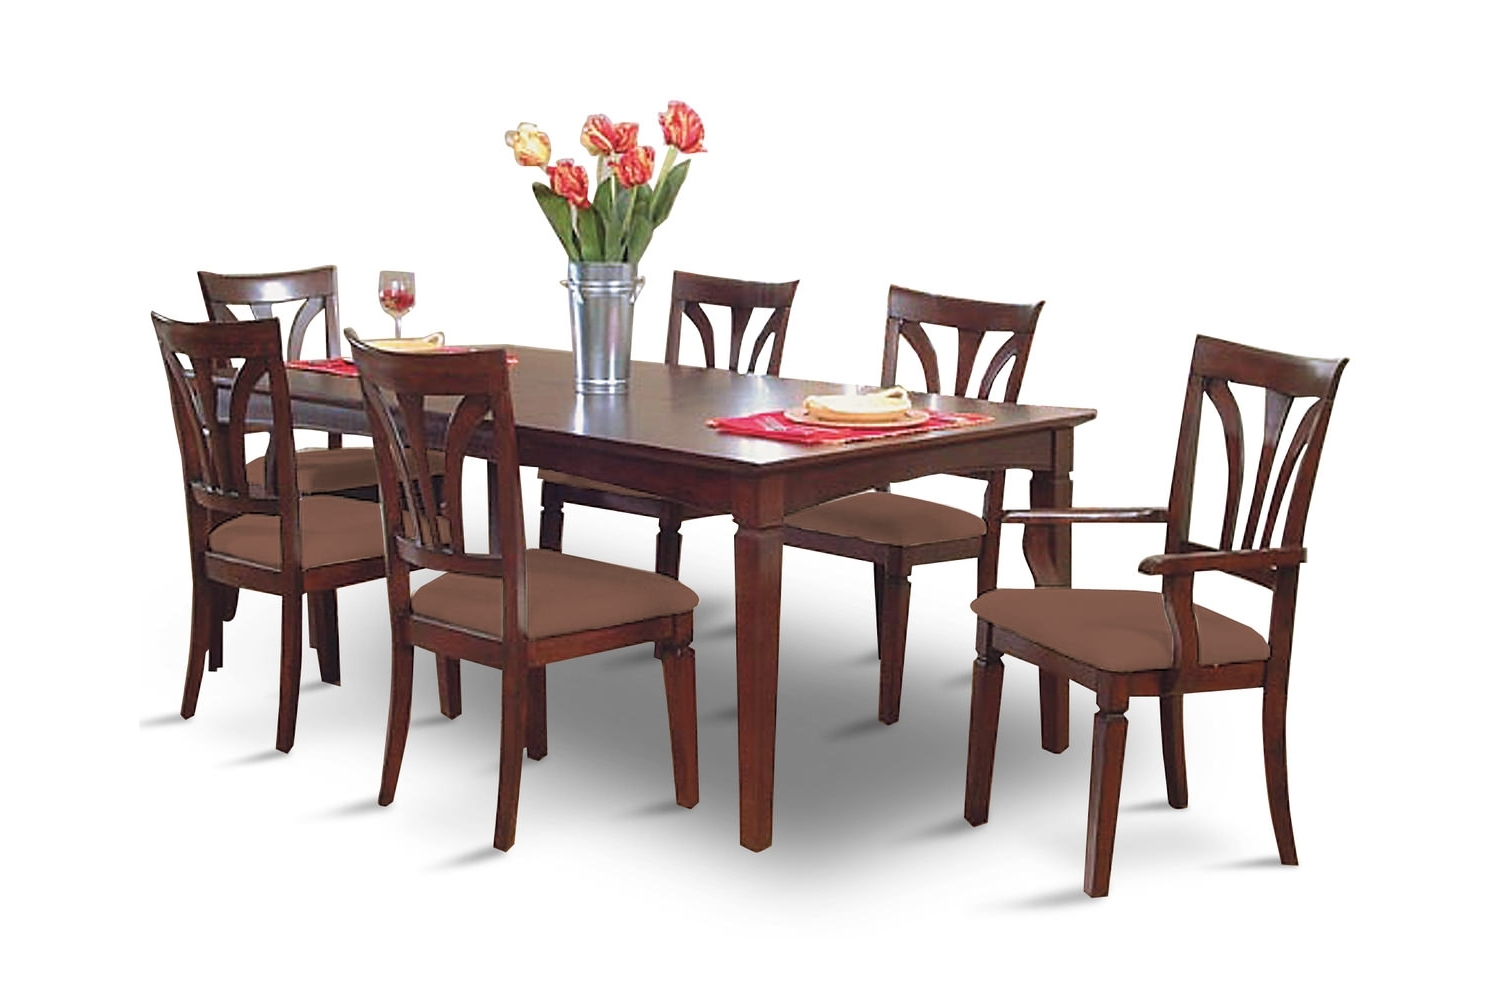 Chapleau Ii 7 Piece Extension Dining Table Sets With Regard To Well Known Dining Sets – Kitchen & Dining Room Sets – Hom Furniture (View 11 of 25)